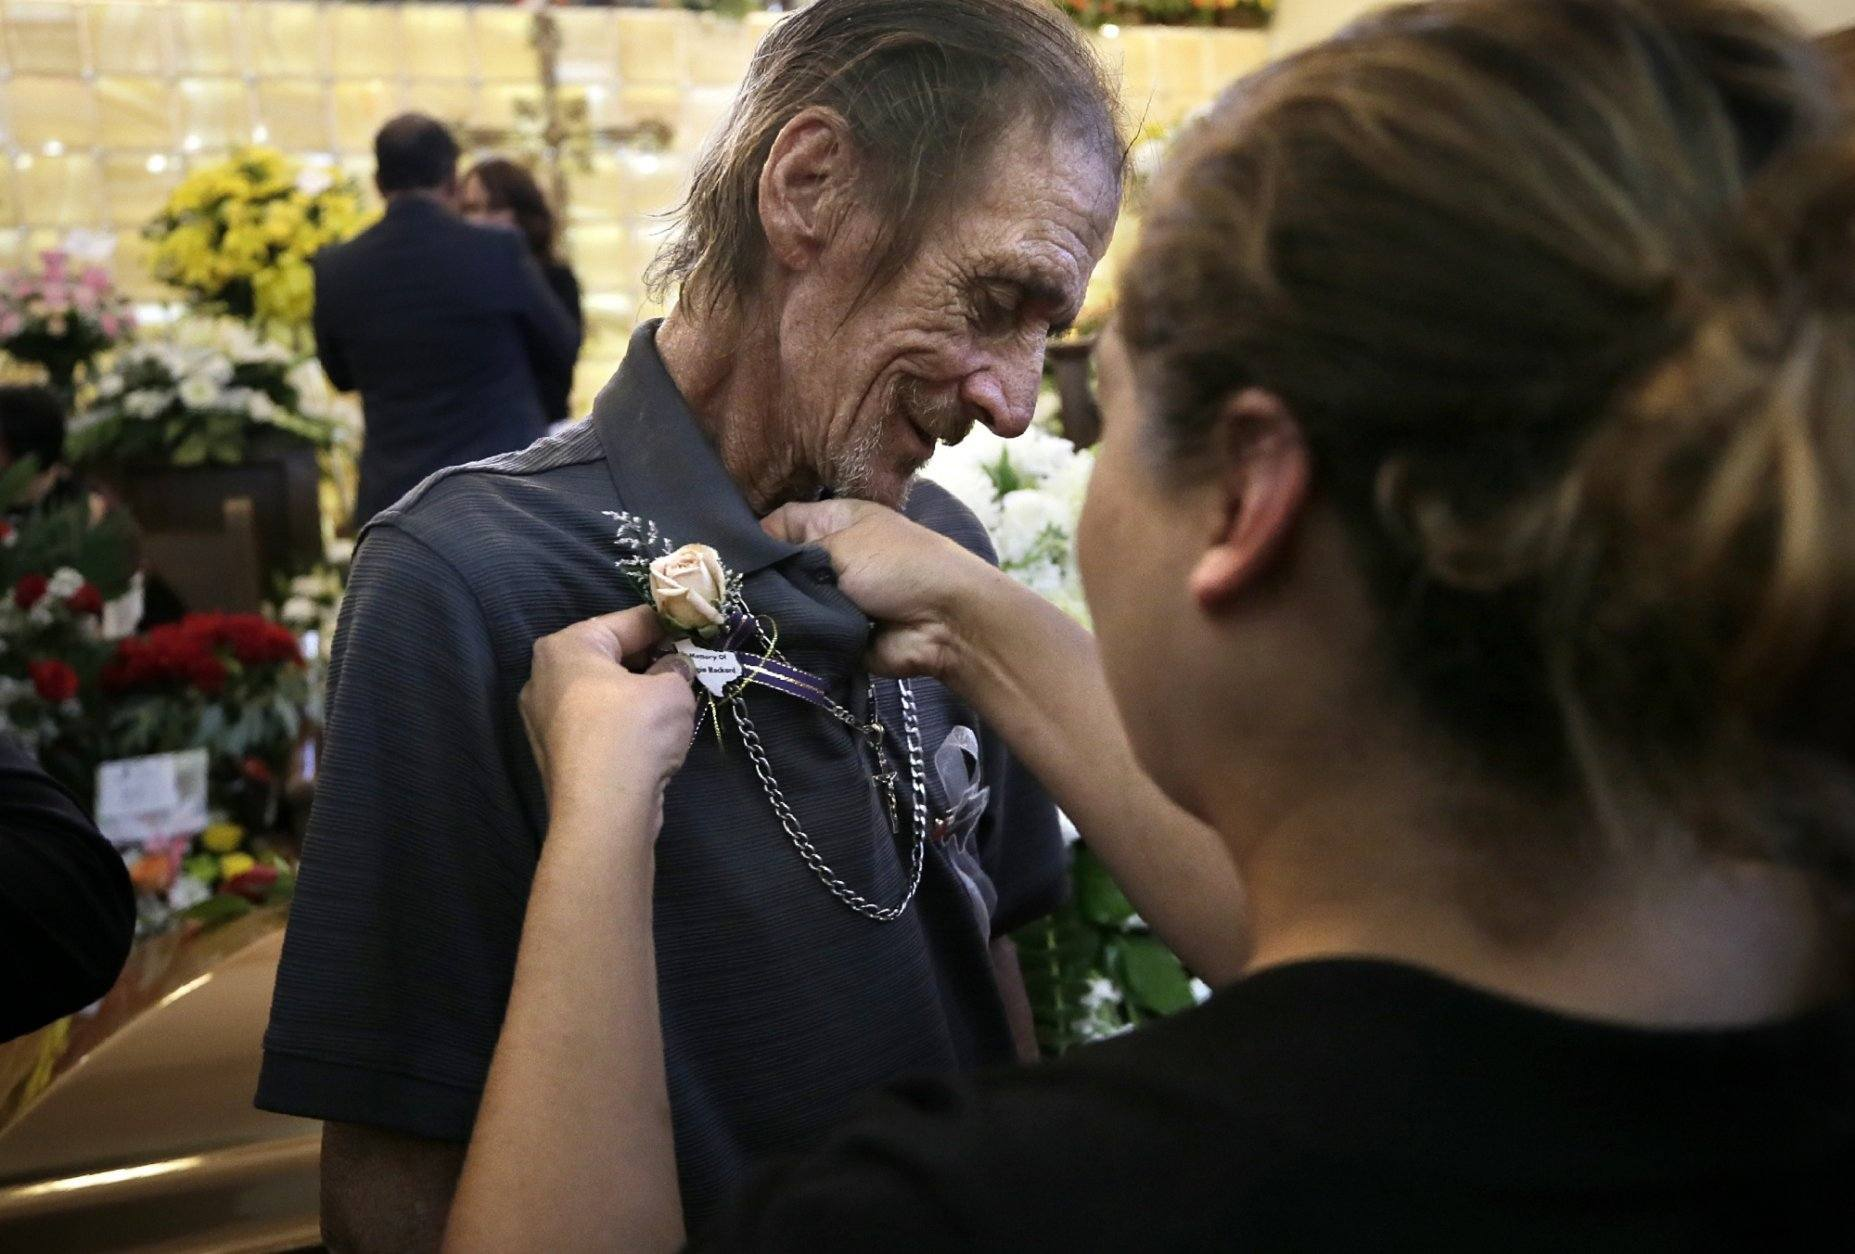 Antonio Basco has a flower pinned to his shirt at the funeral of his companion of 22 years, Margie Reckard, at La Paz Faith Memorial & Spiritual Center, Friday, Aug. 16, 2019, in El Paso, Texas. Reckard was killed during the mass shooting on Aug. 3. (Mark Lambie/The El Paso Times via AP)